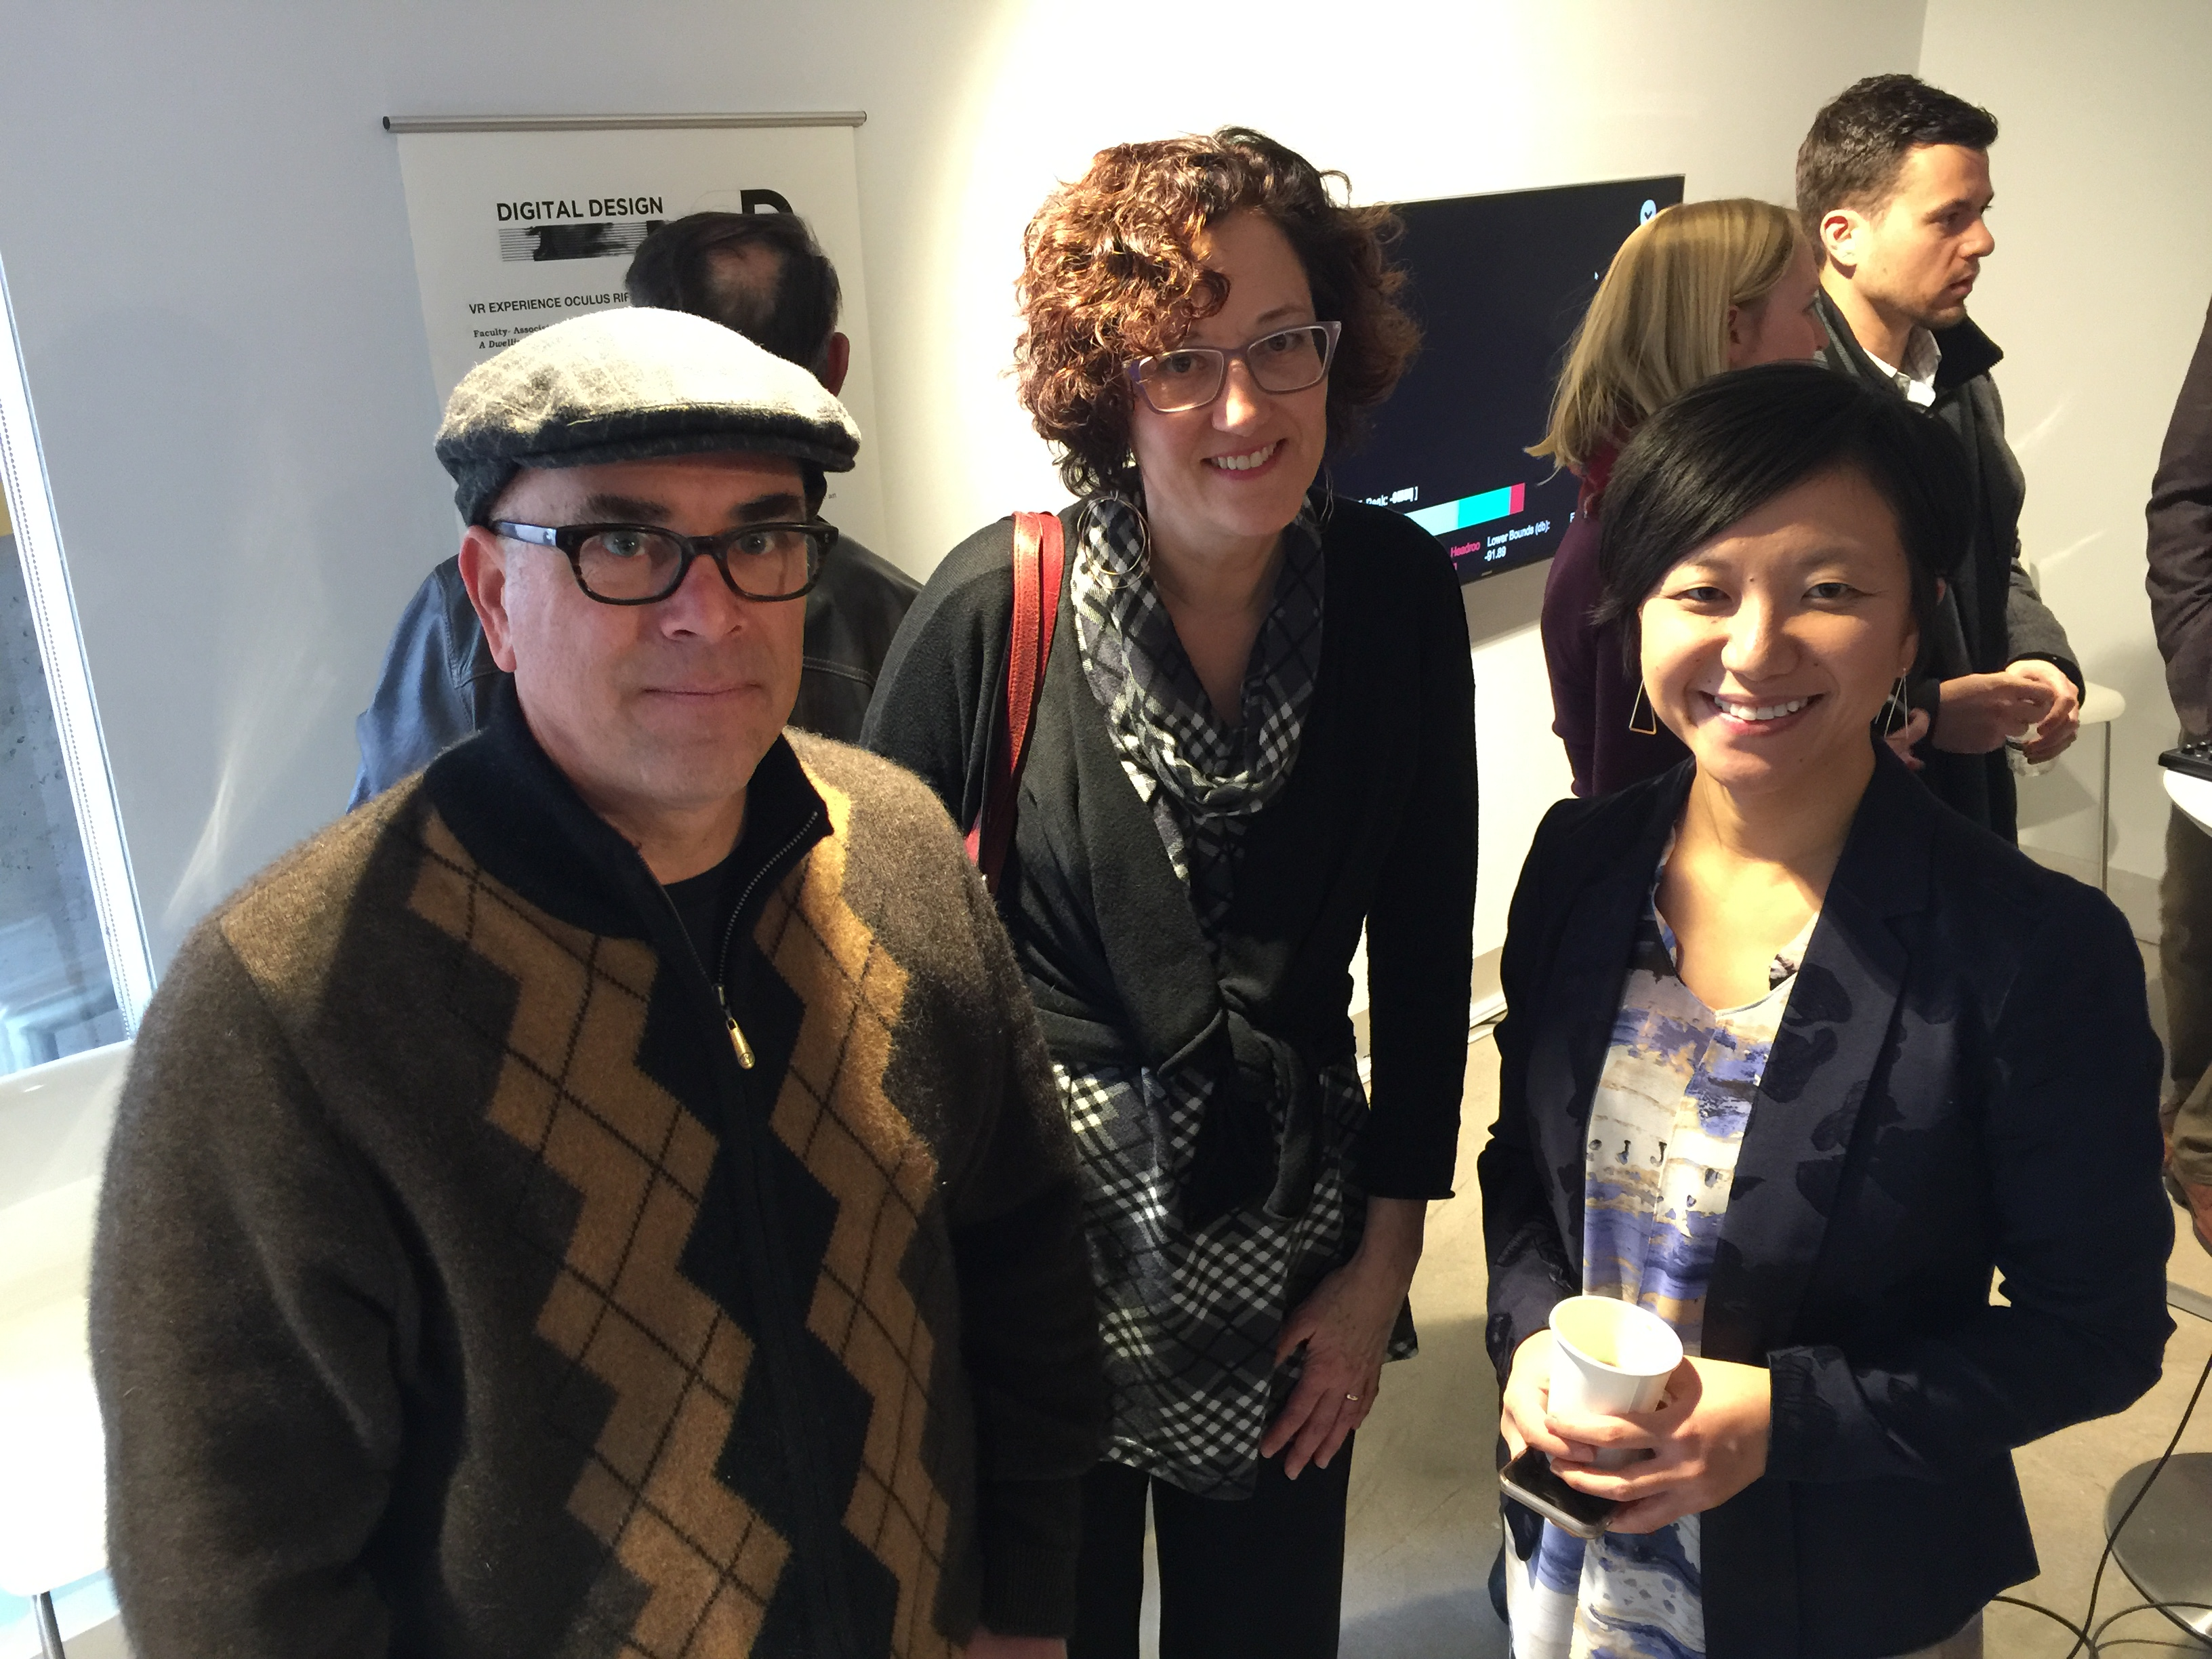 Profs. Bryan Leister, Becky Heavner and Yang Wang